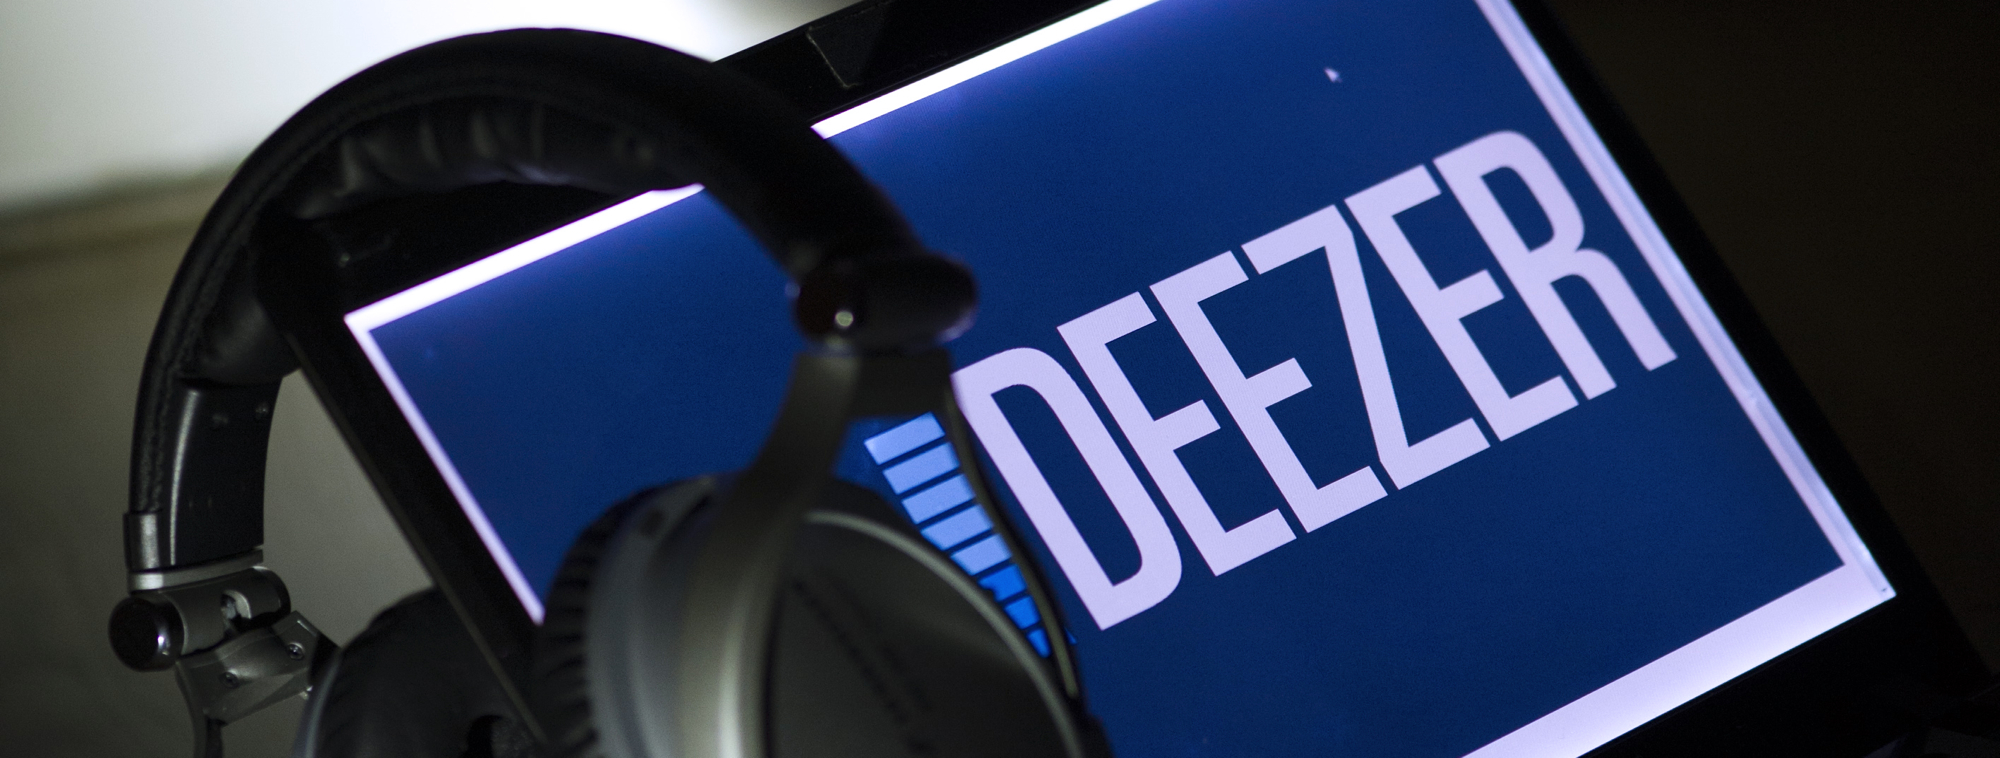 Deezer Quietly Drops Premium Plan, Now Only Free or Premium+